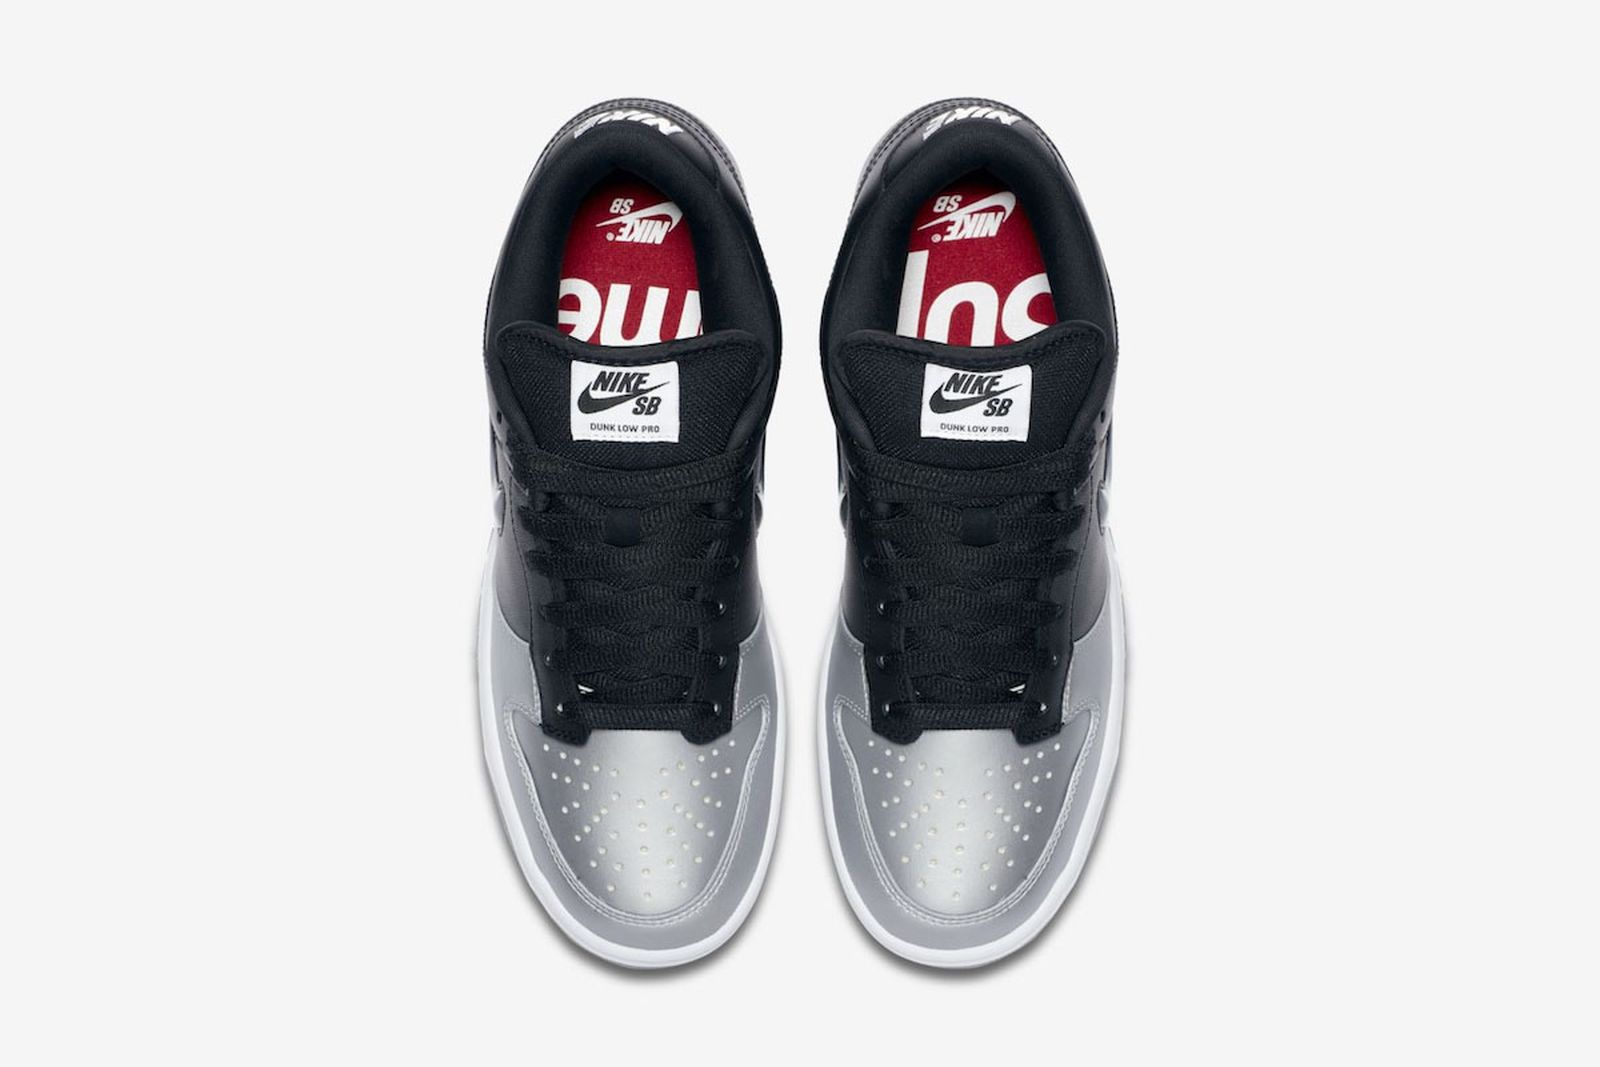 Supreme Nike Sb Dunk Low Official Images